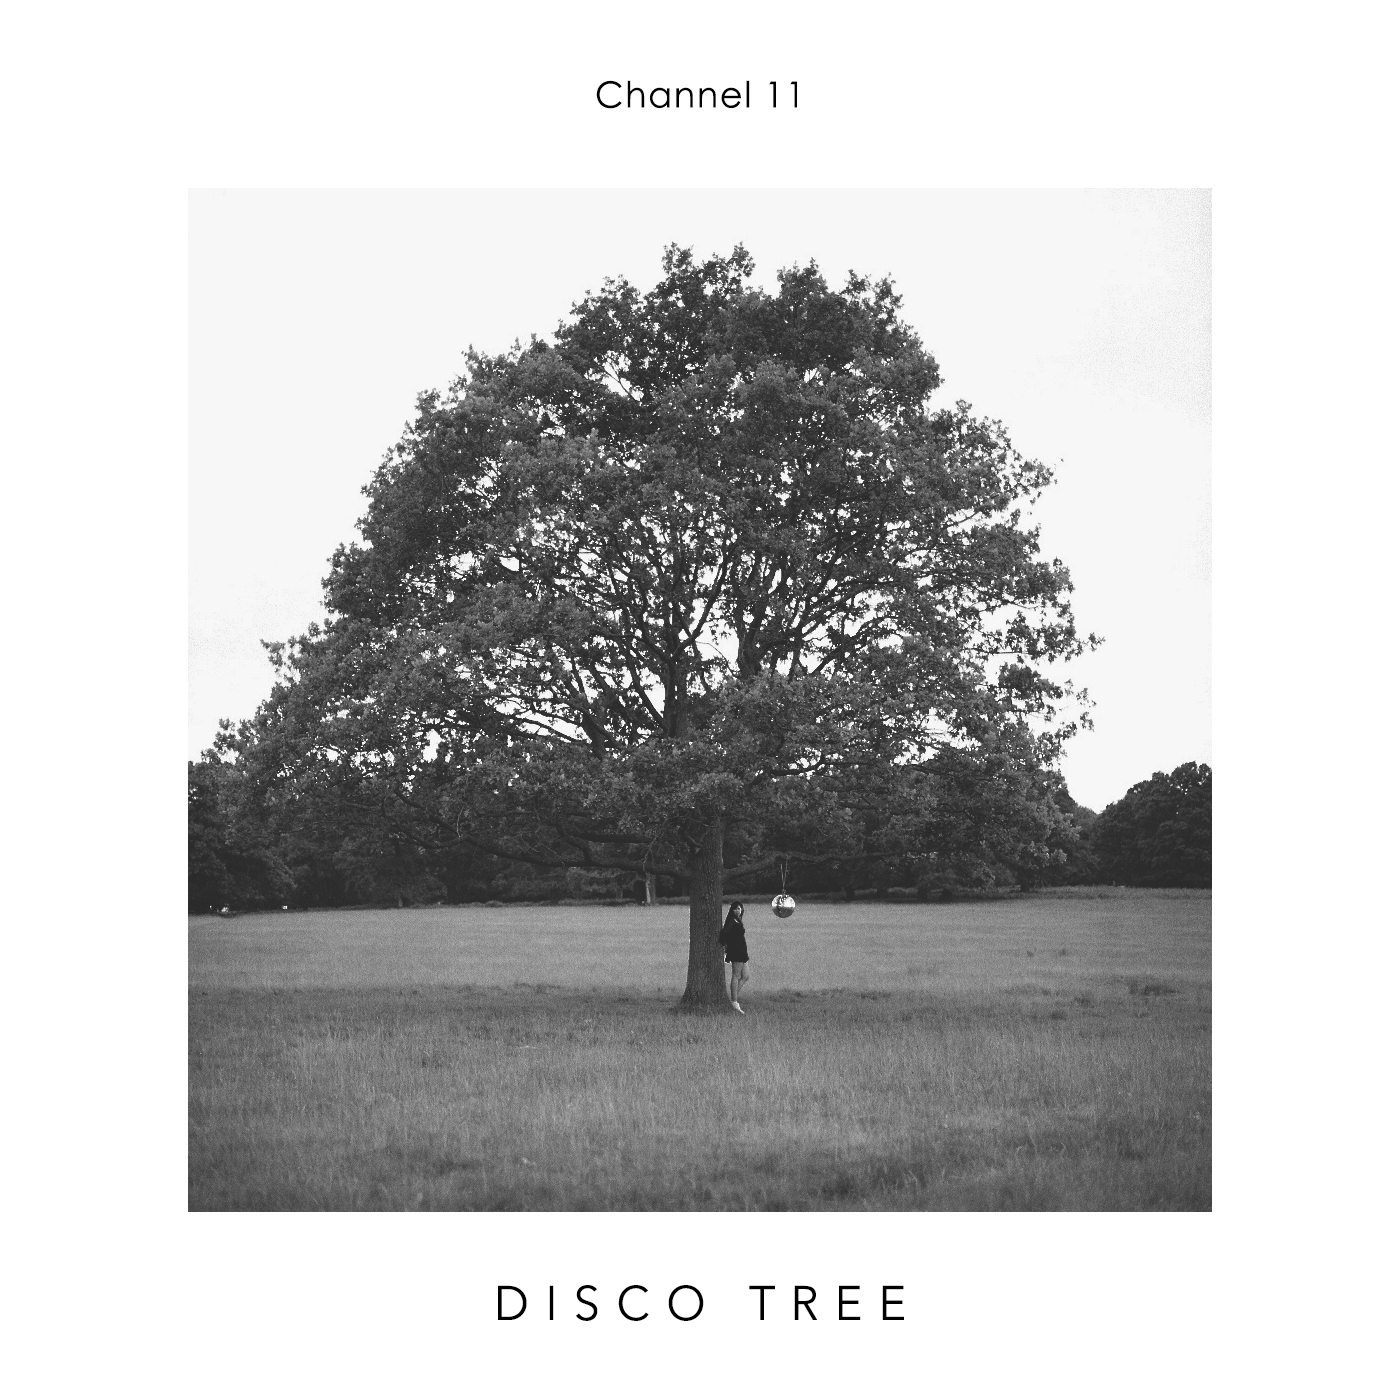 Channel-11-Disco-Tree-album-cover-2017.png